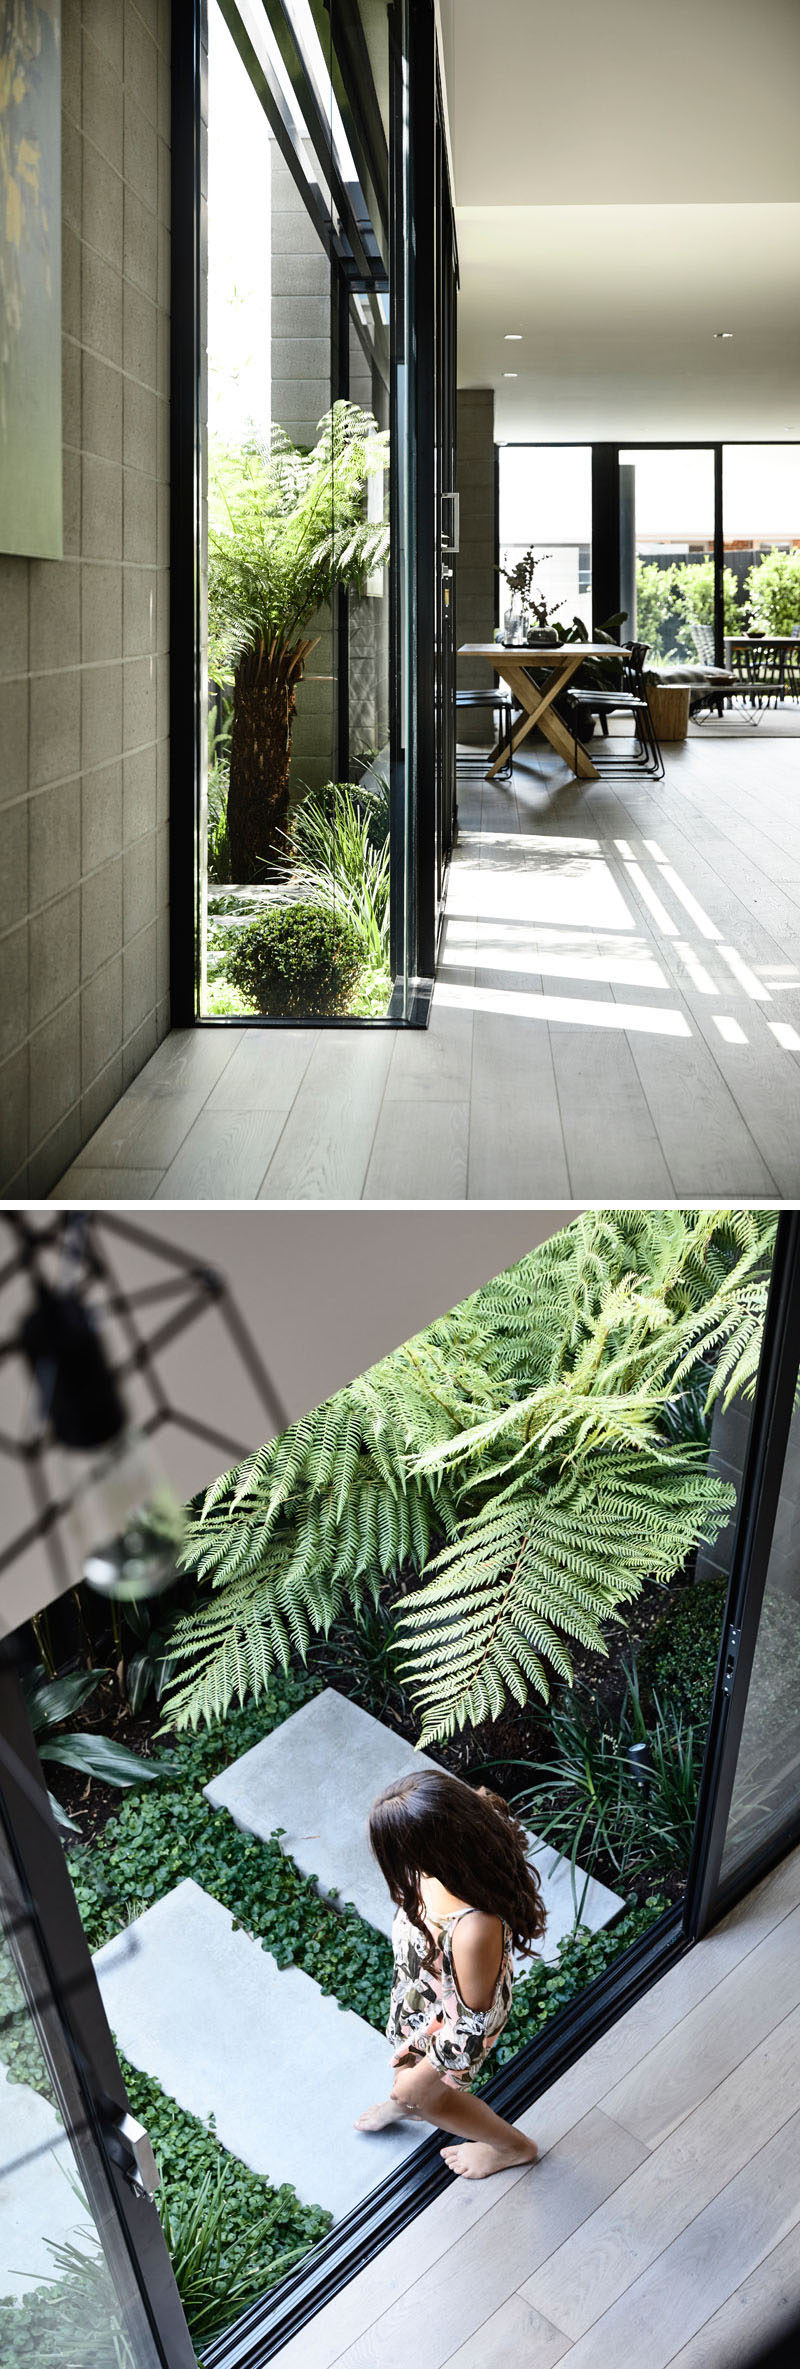 This modern house has a small side courtyard that can be accessed through sliding glass doors. #Landscaping #Garden